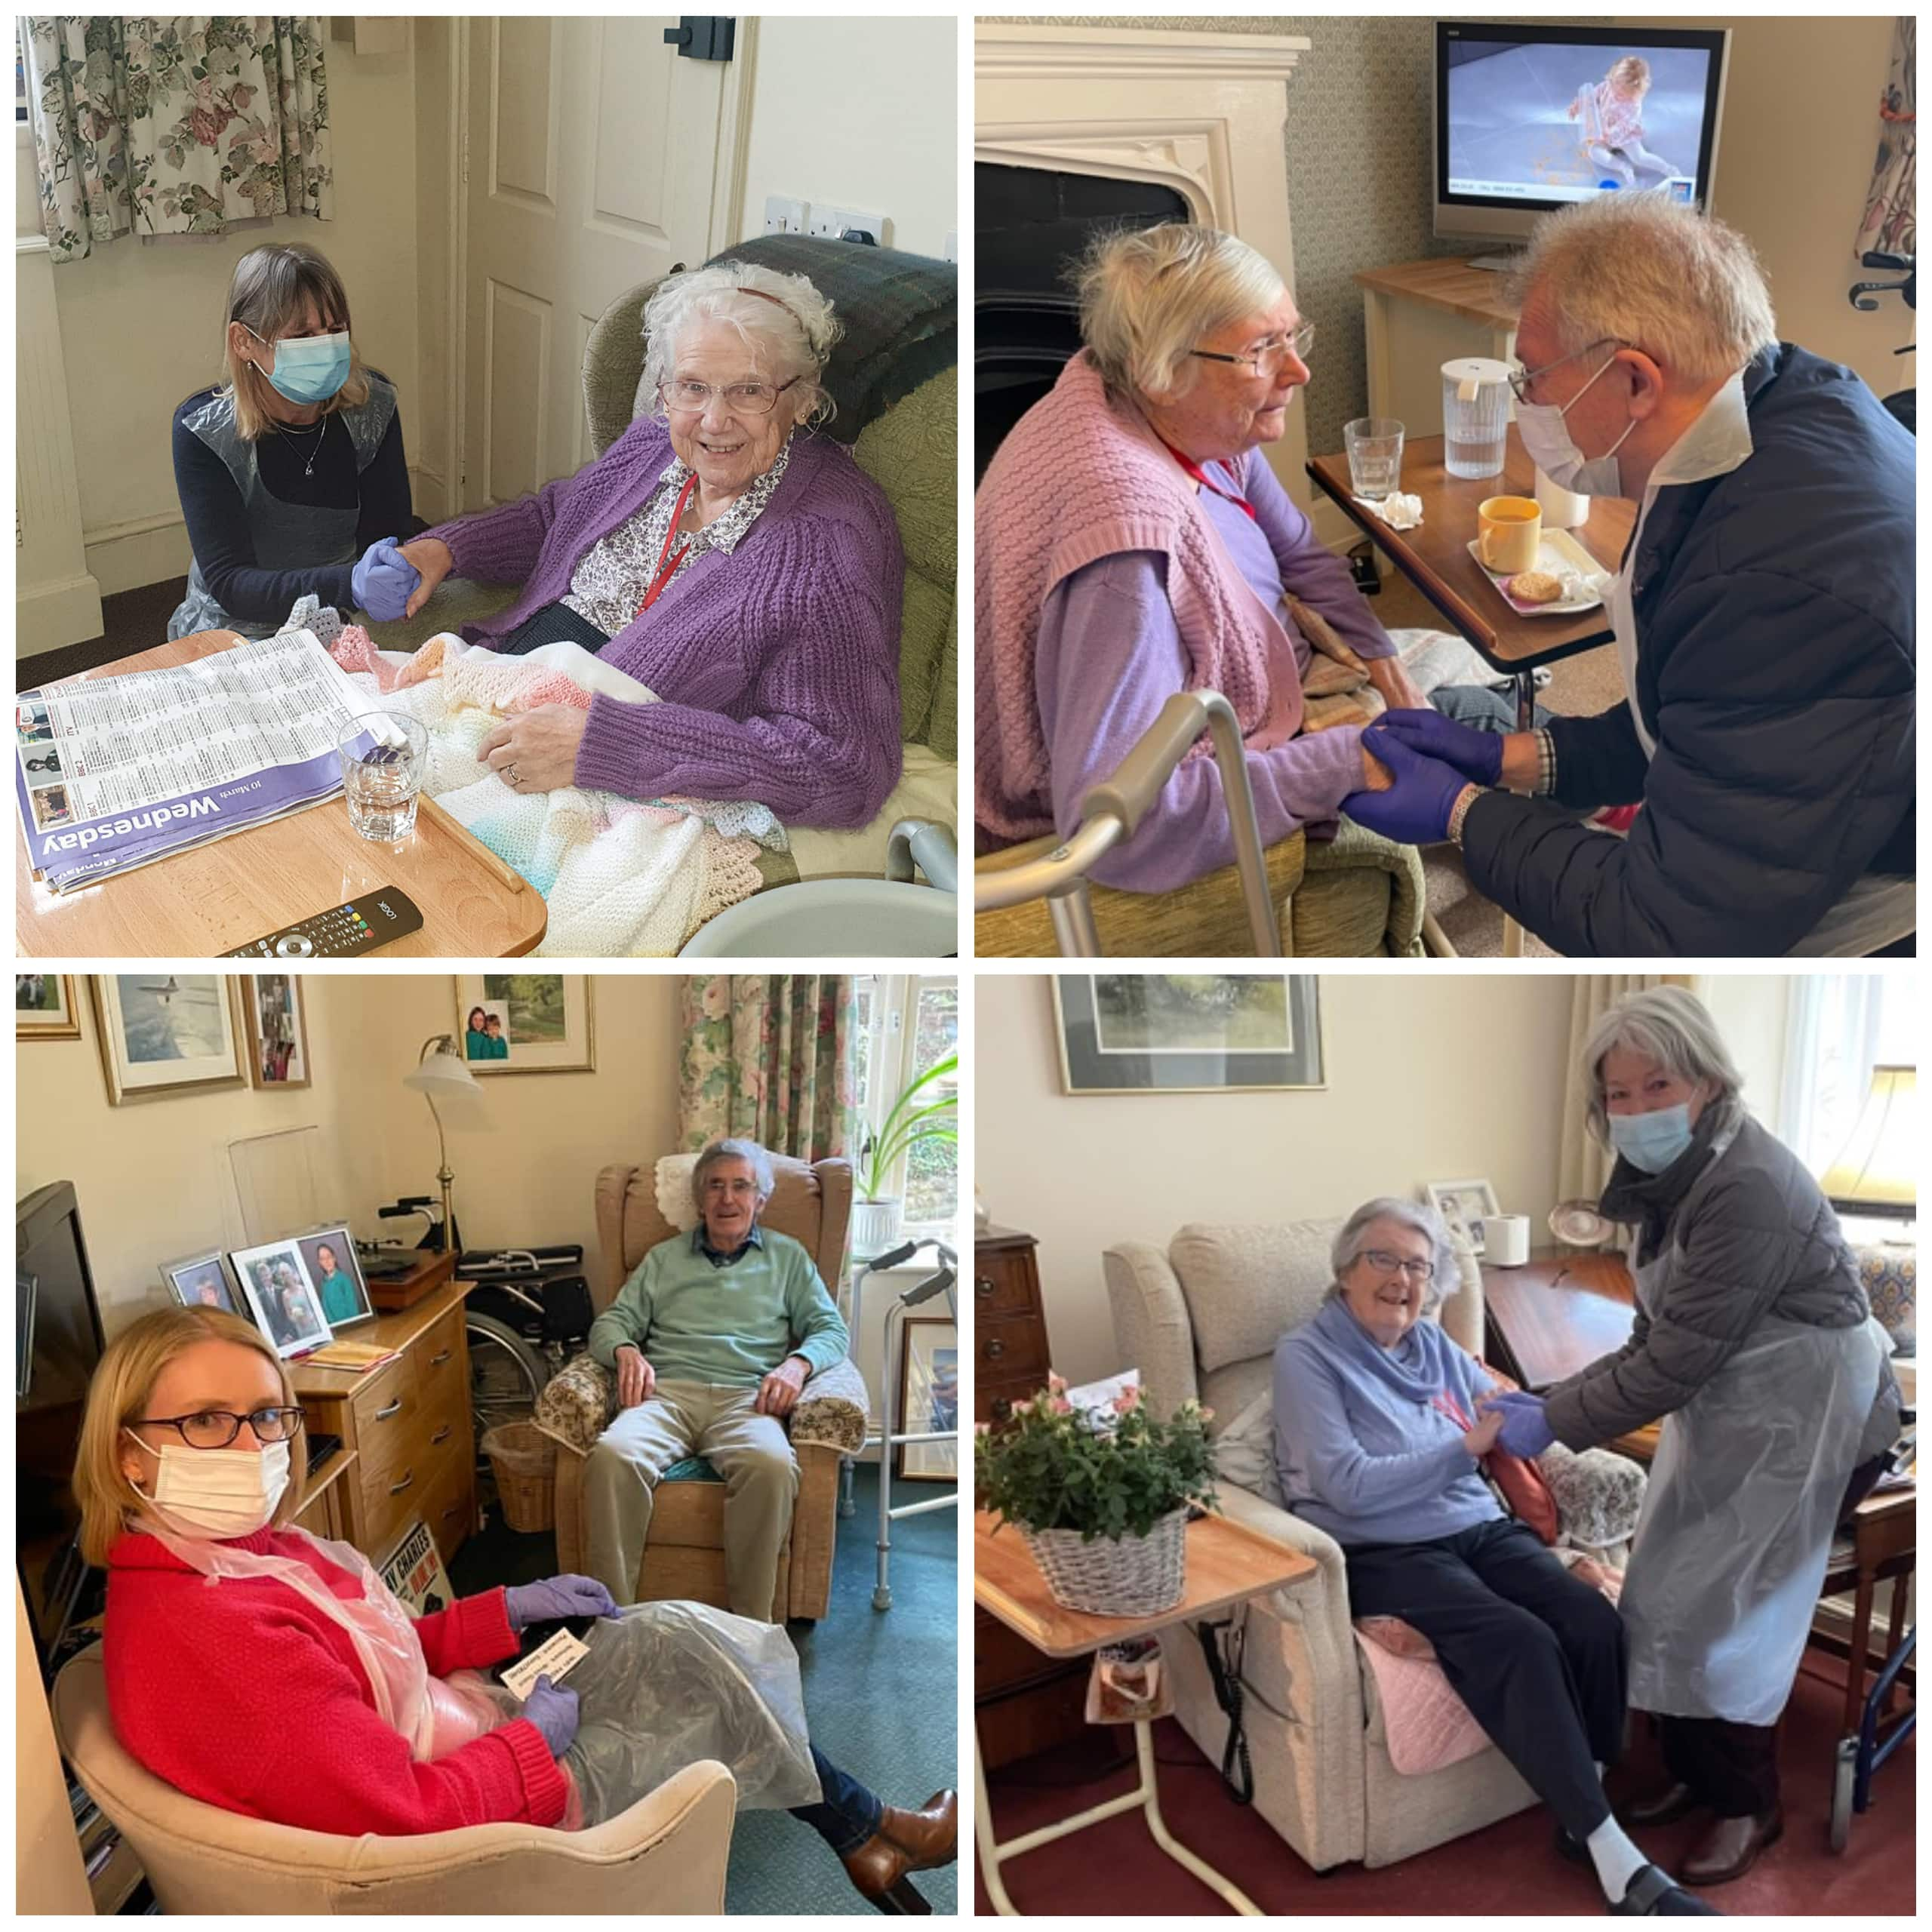 Residents at Featherton House Care Home in Deddington reunited with their designated visitors inside the home.